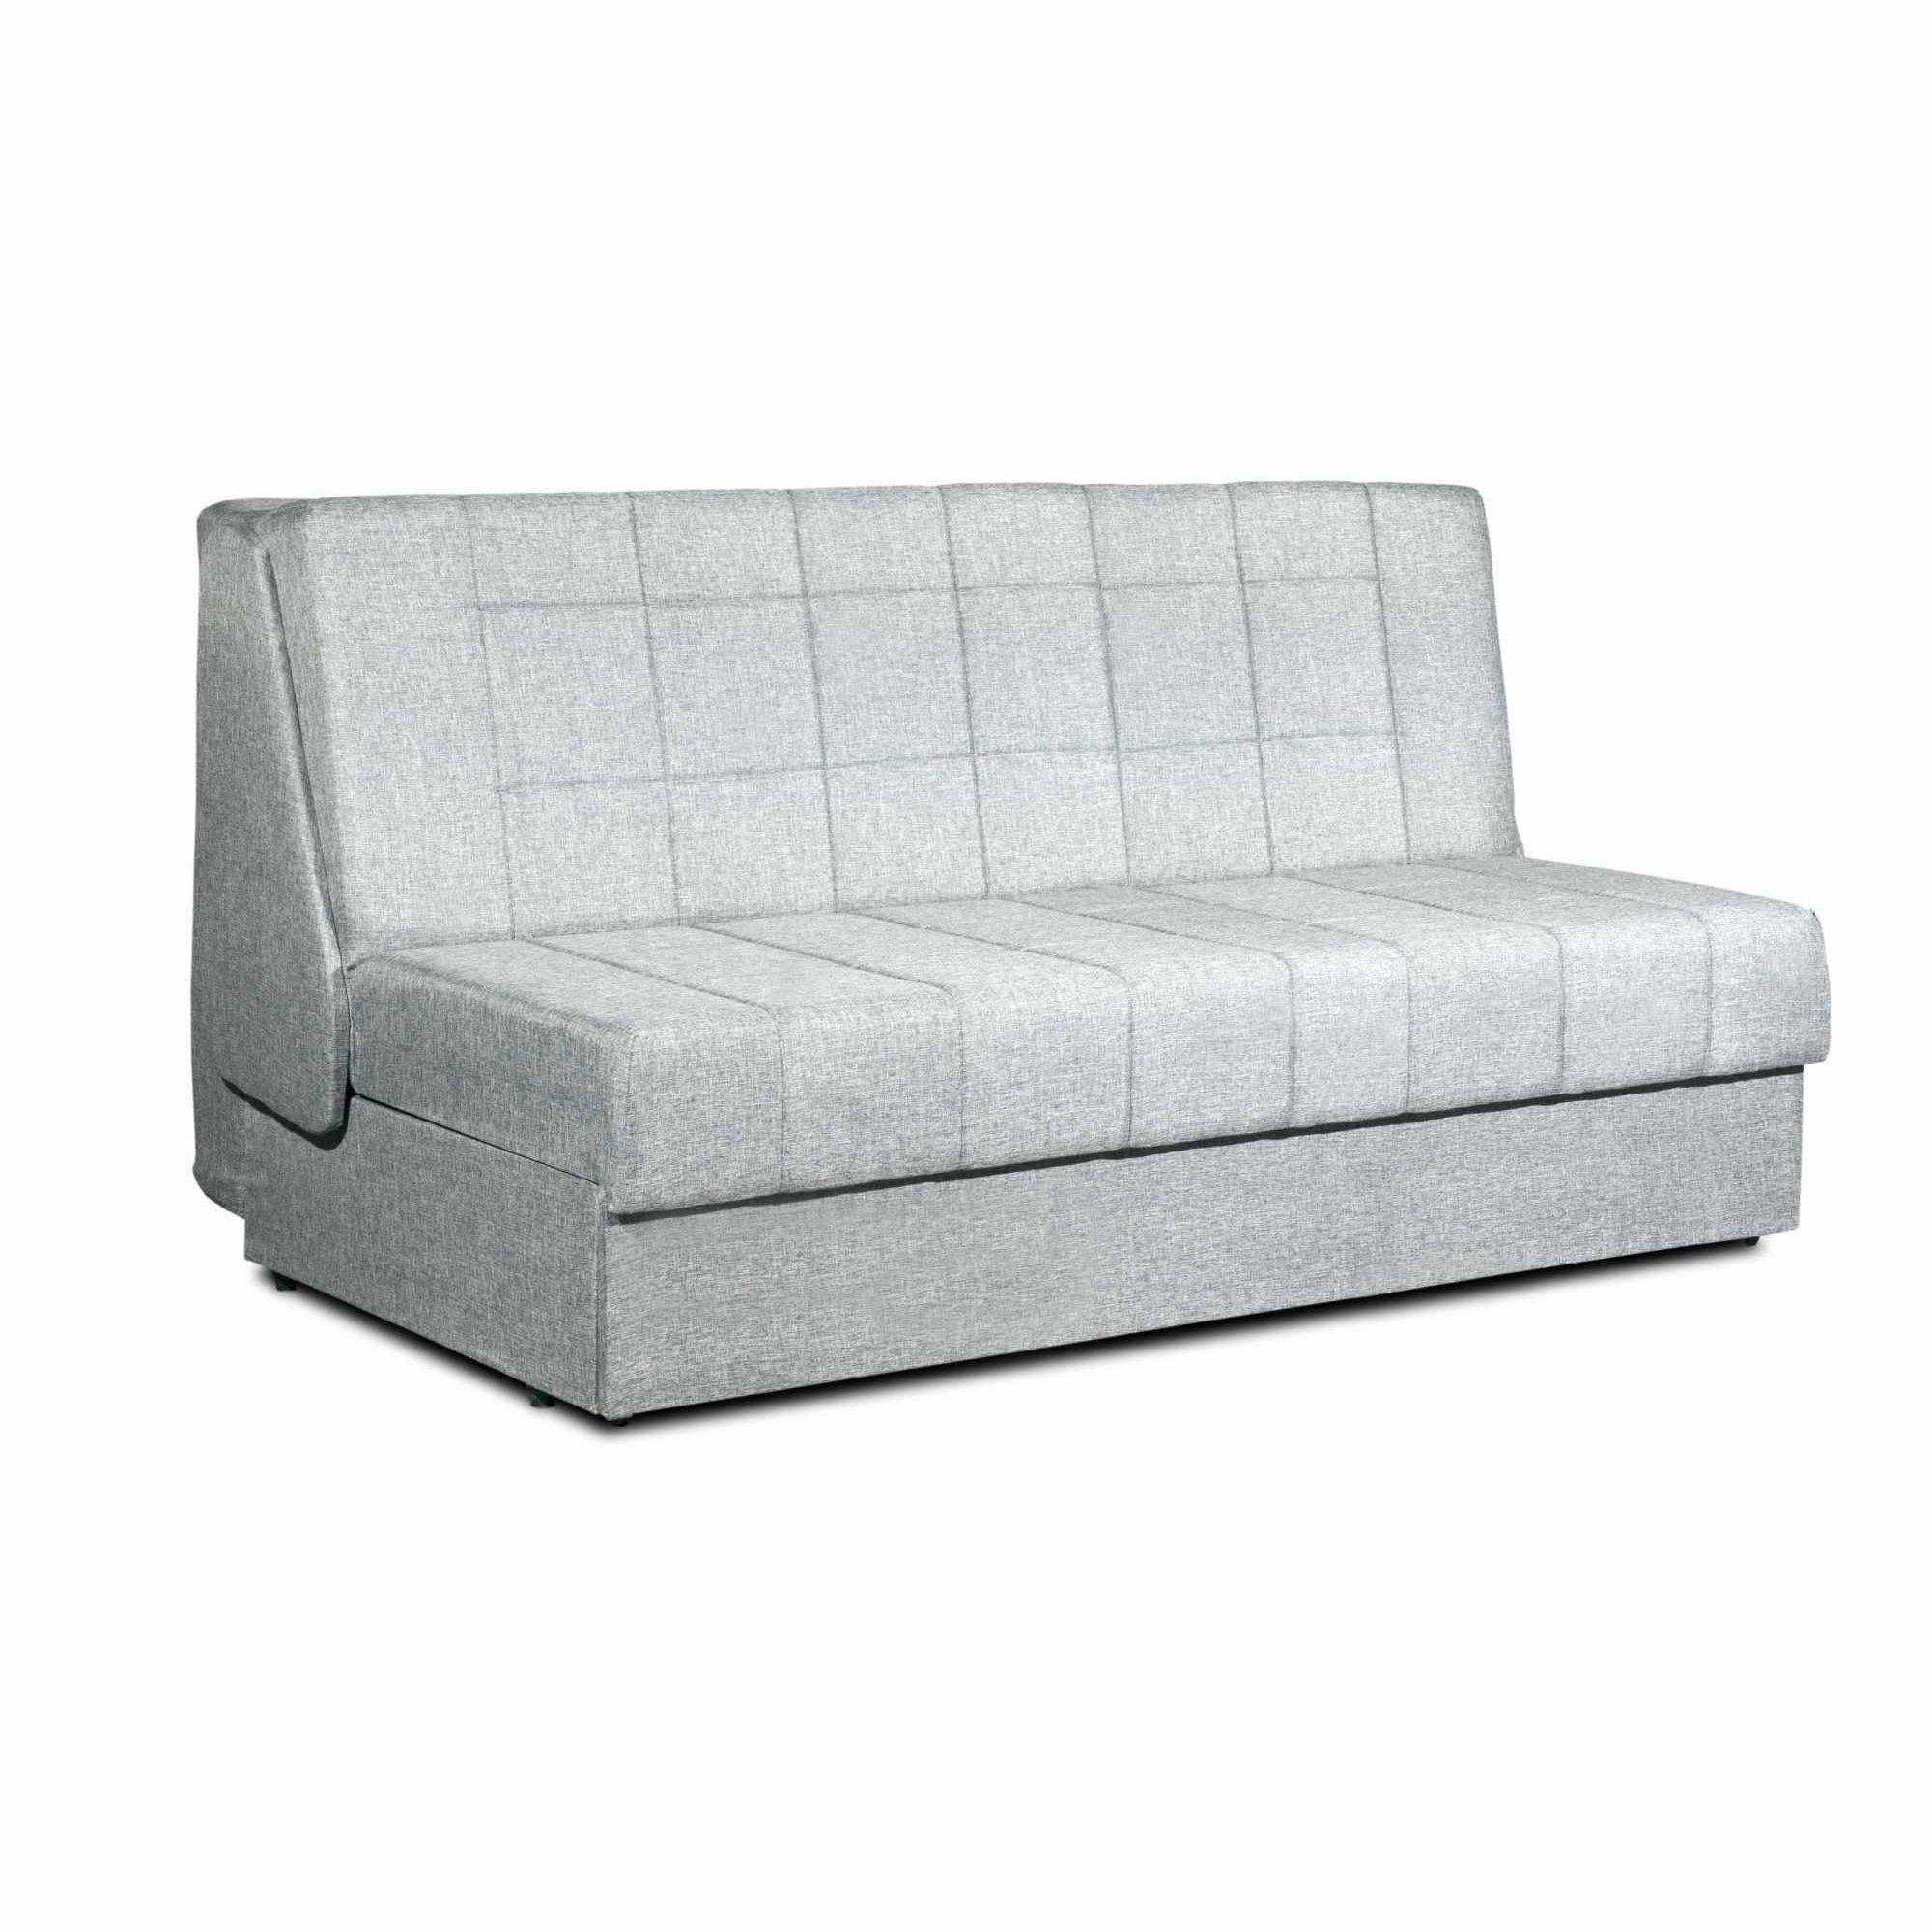 Deco in paris 5 canape convertible 3 places en tissu gris design dublin dub - Canape gris convertible ...